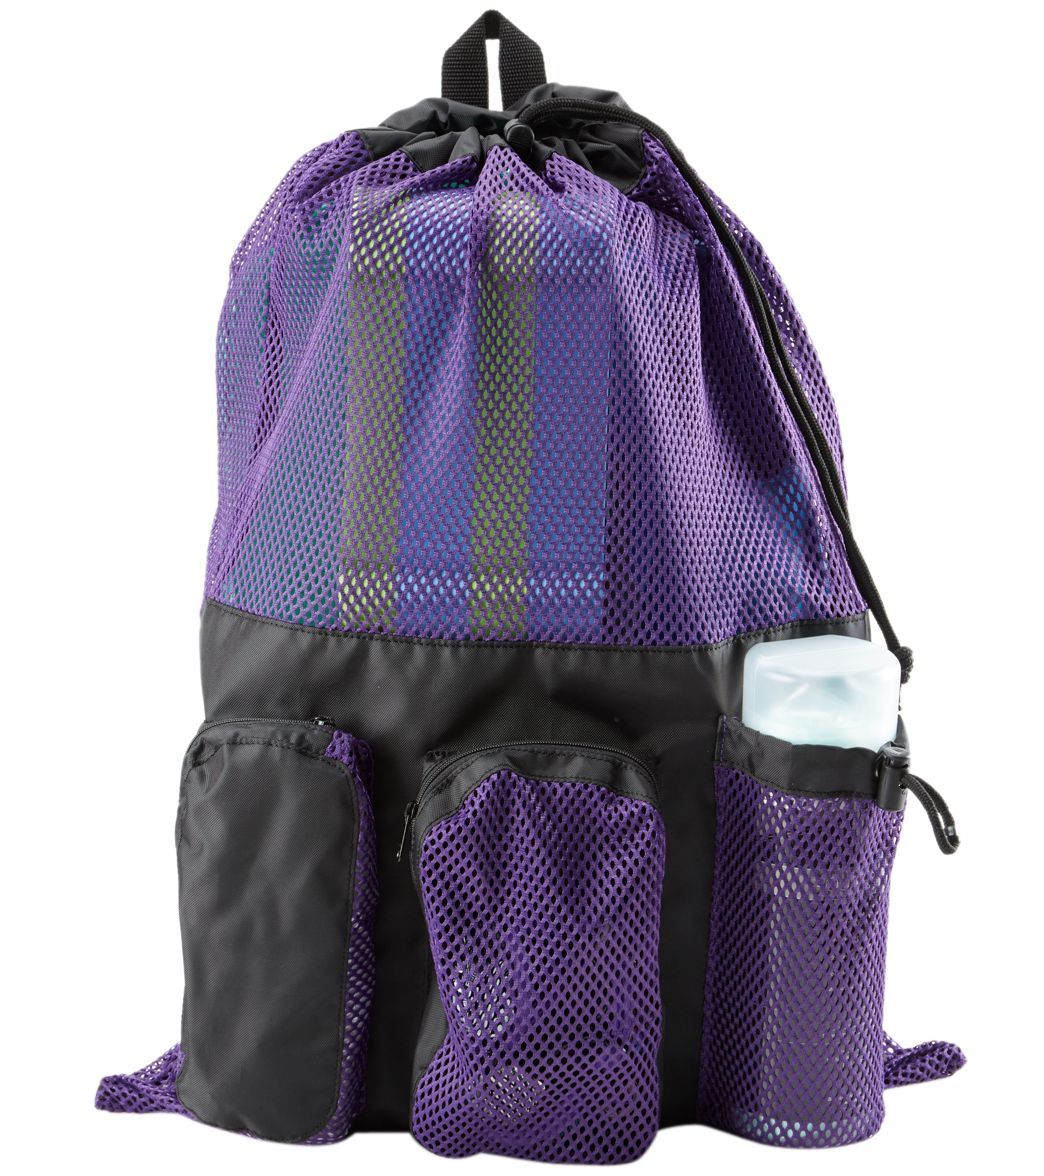 f084c2f16b The Sporti Equipment Color Block Mesh Bag is the perfect travel companion  for storing everything from